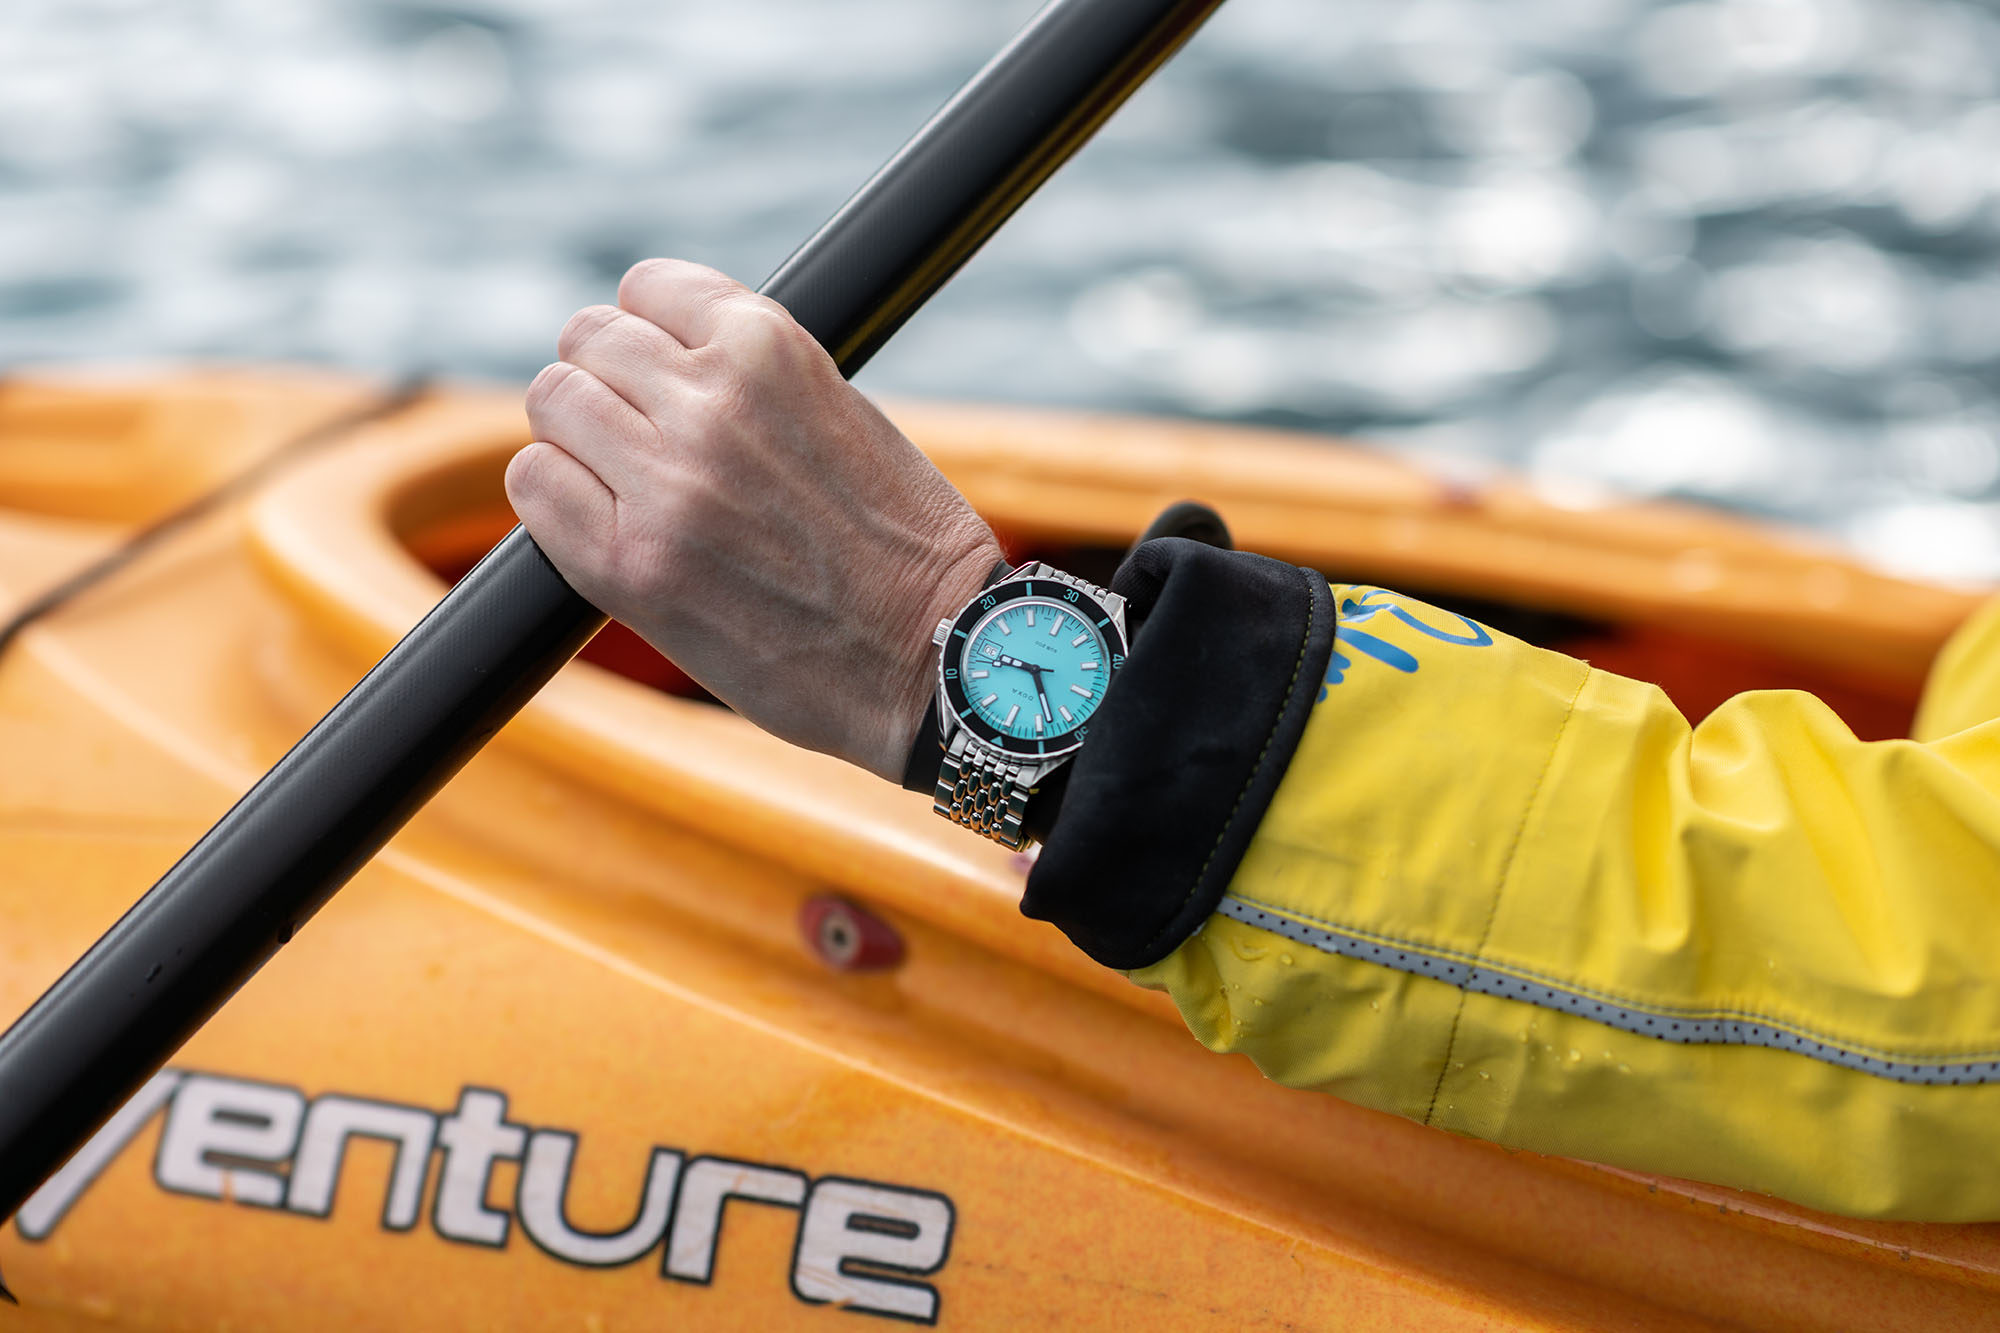 RECOMMENDED READING: Taking the DOXA SUB 200 over the water, but not into it